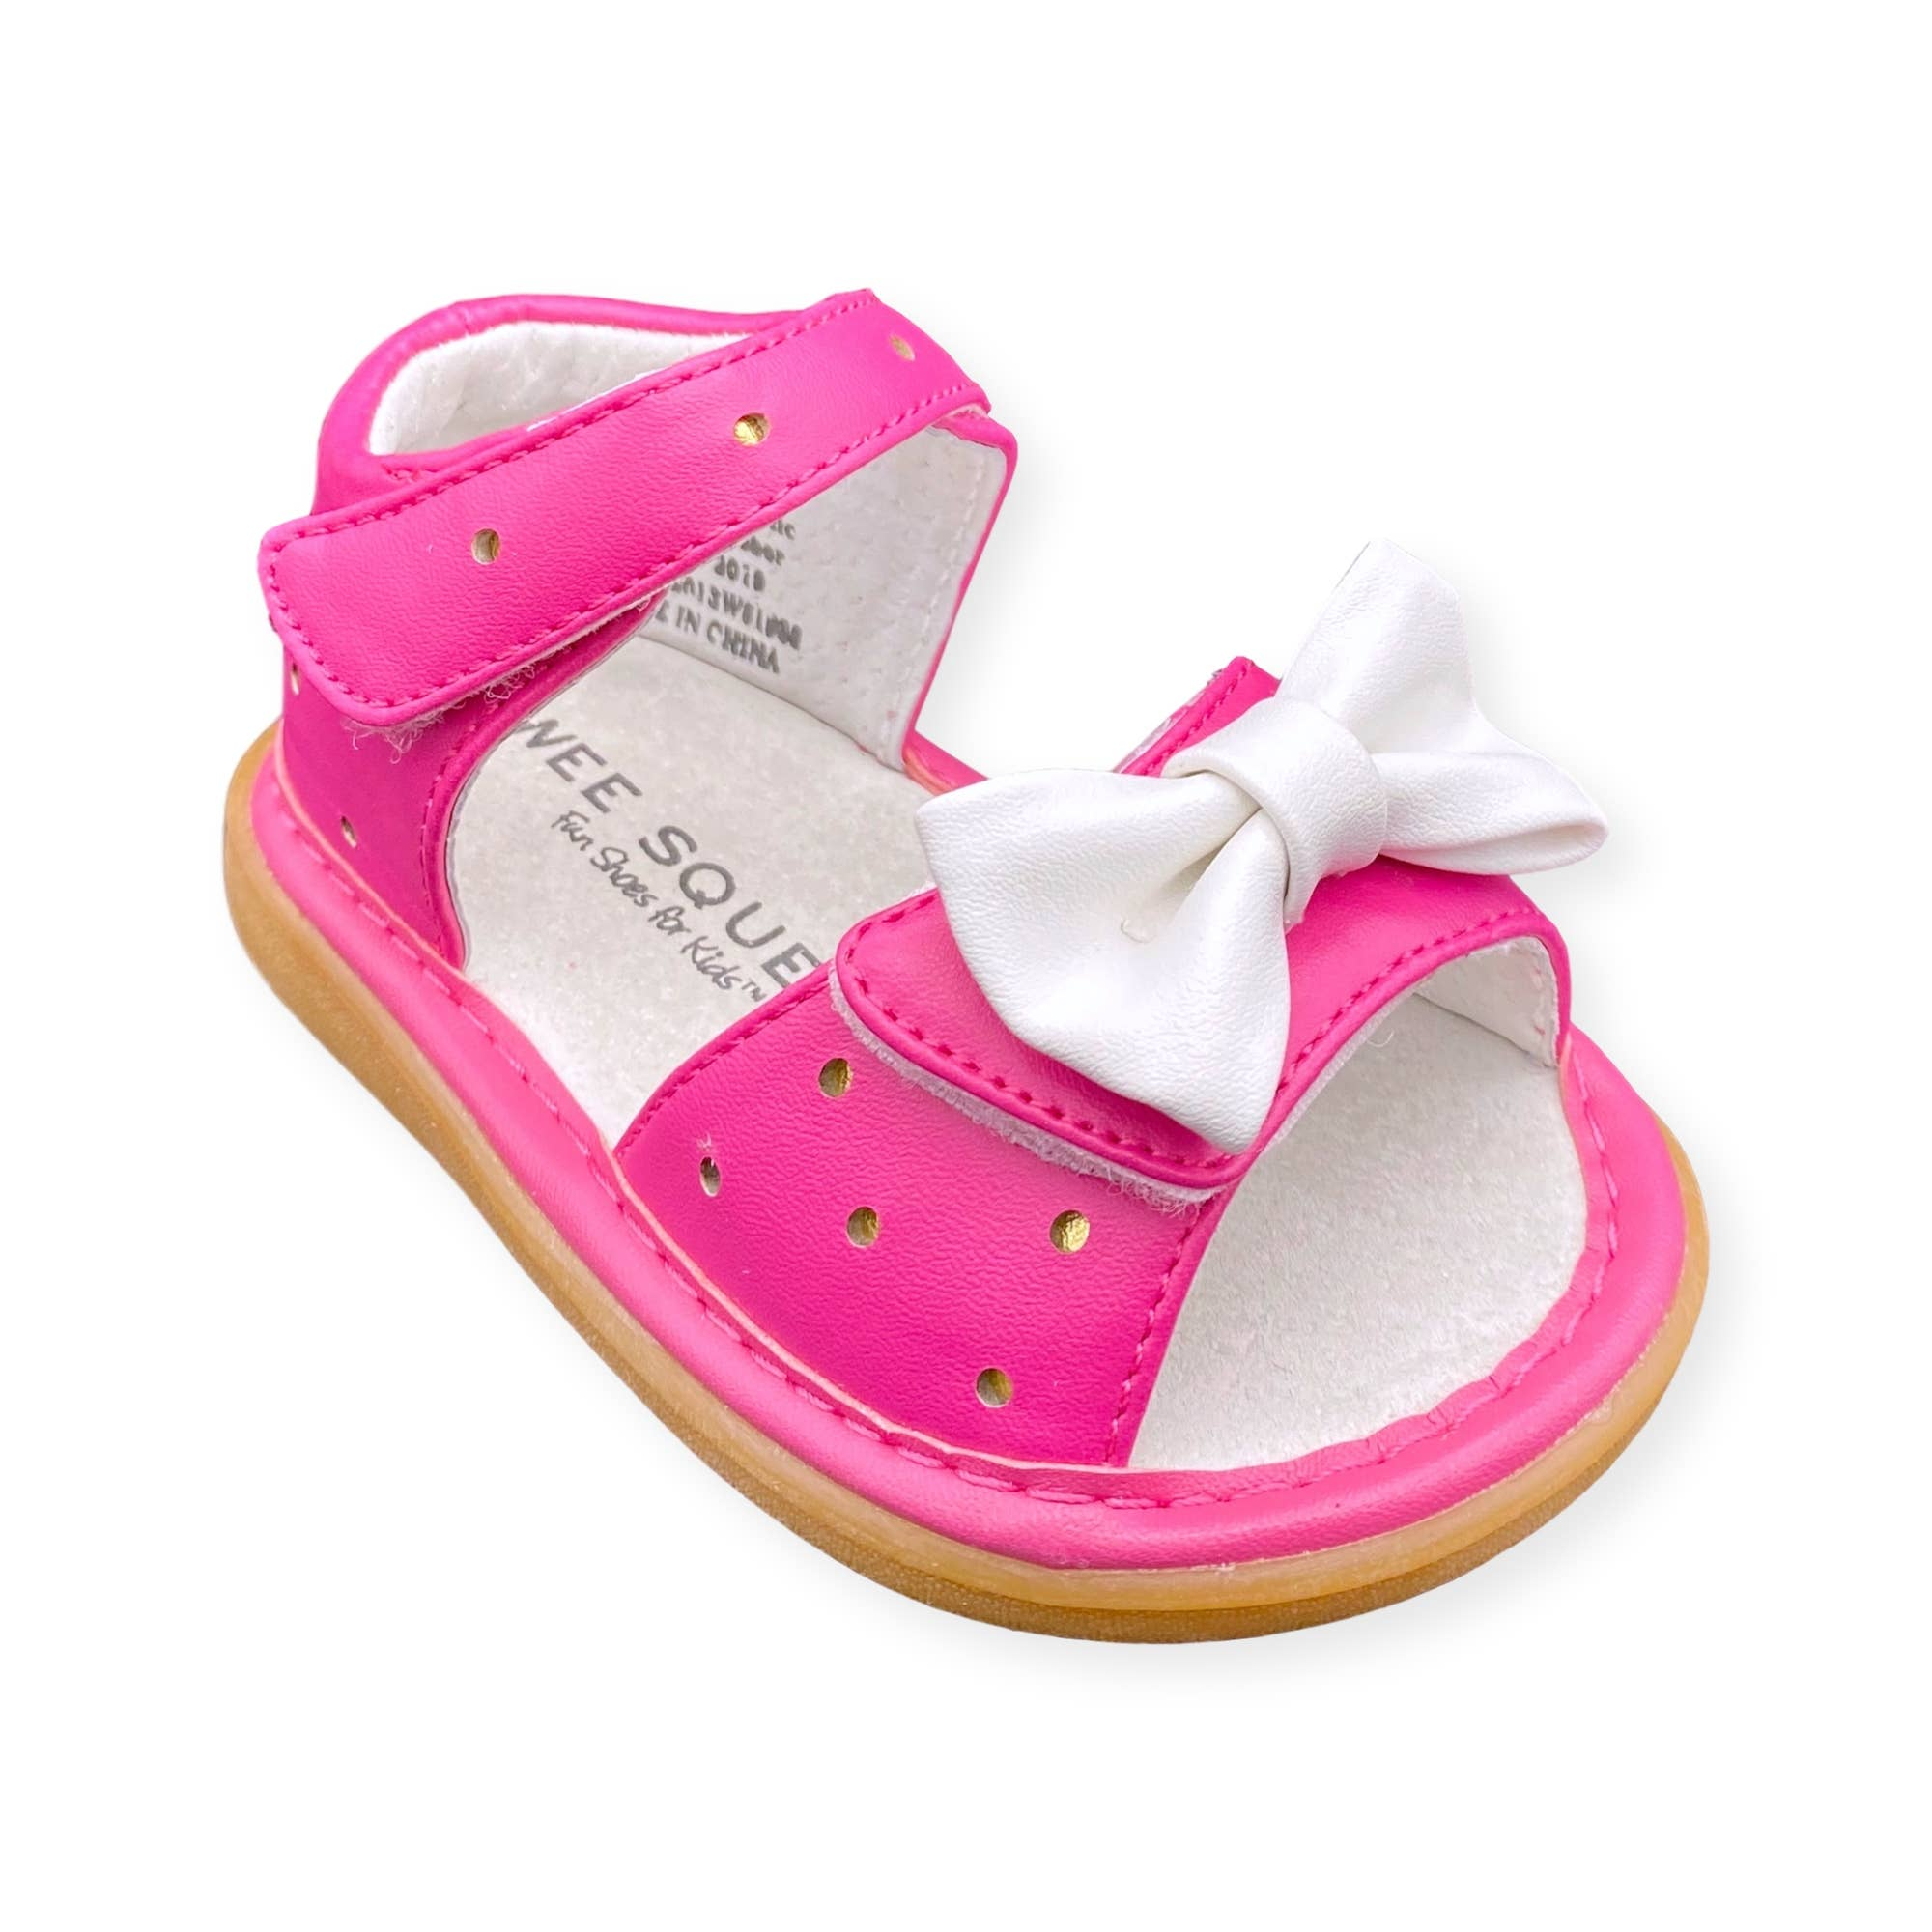 Stella Hot Pink Sandal - Le Bébé Chic Boutique